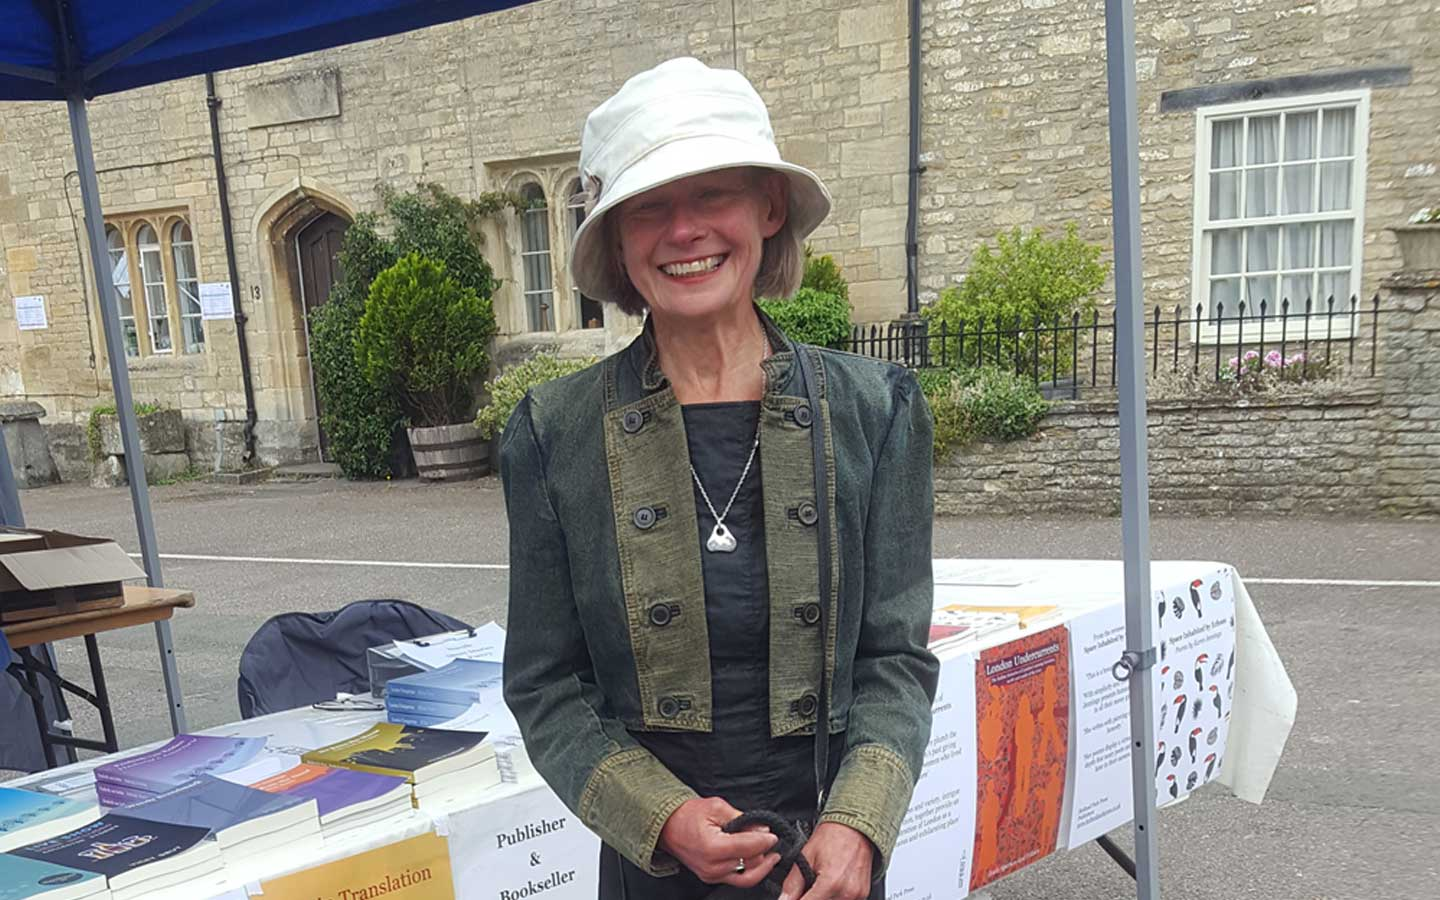 Bringing Books to the Market An interview with Bernadette from Holland Park Press